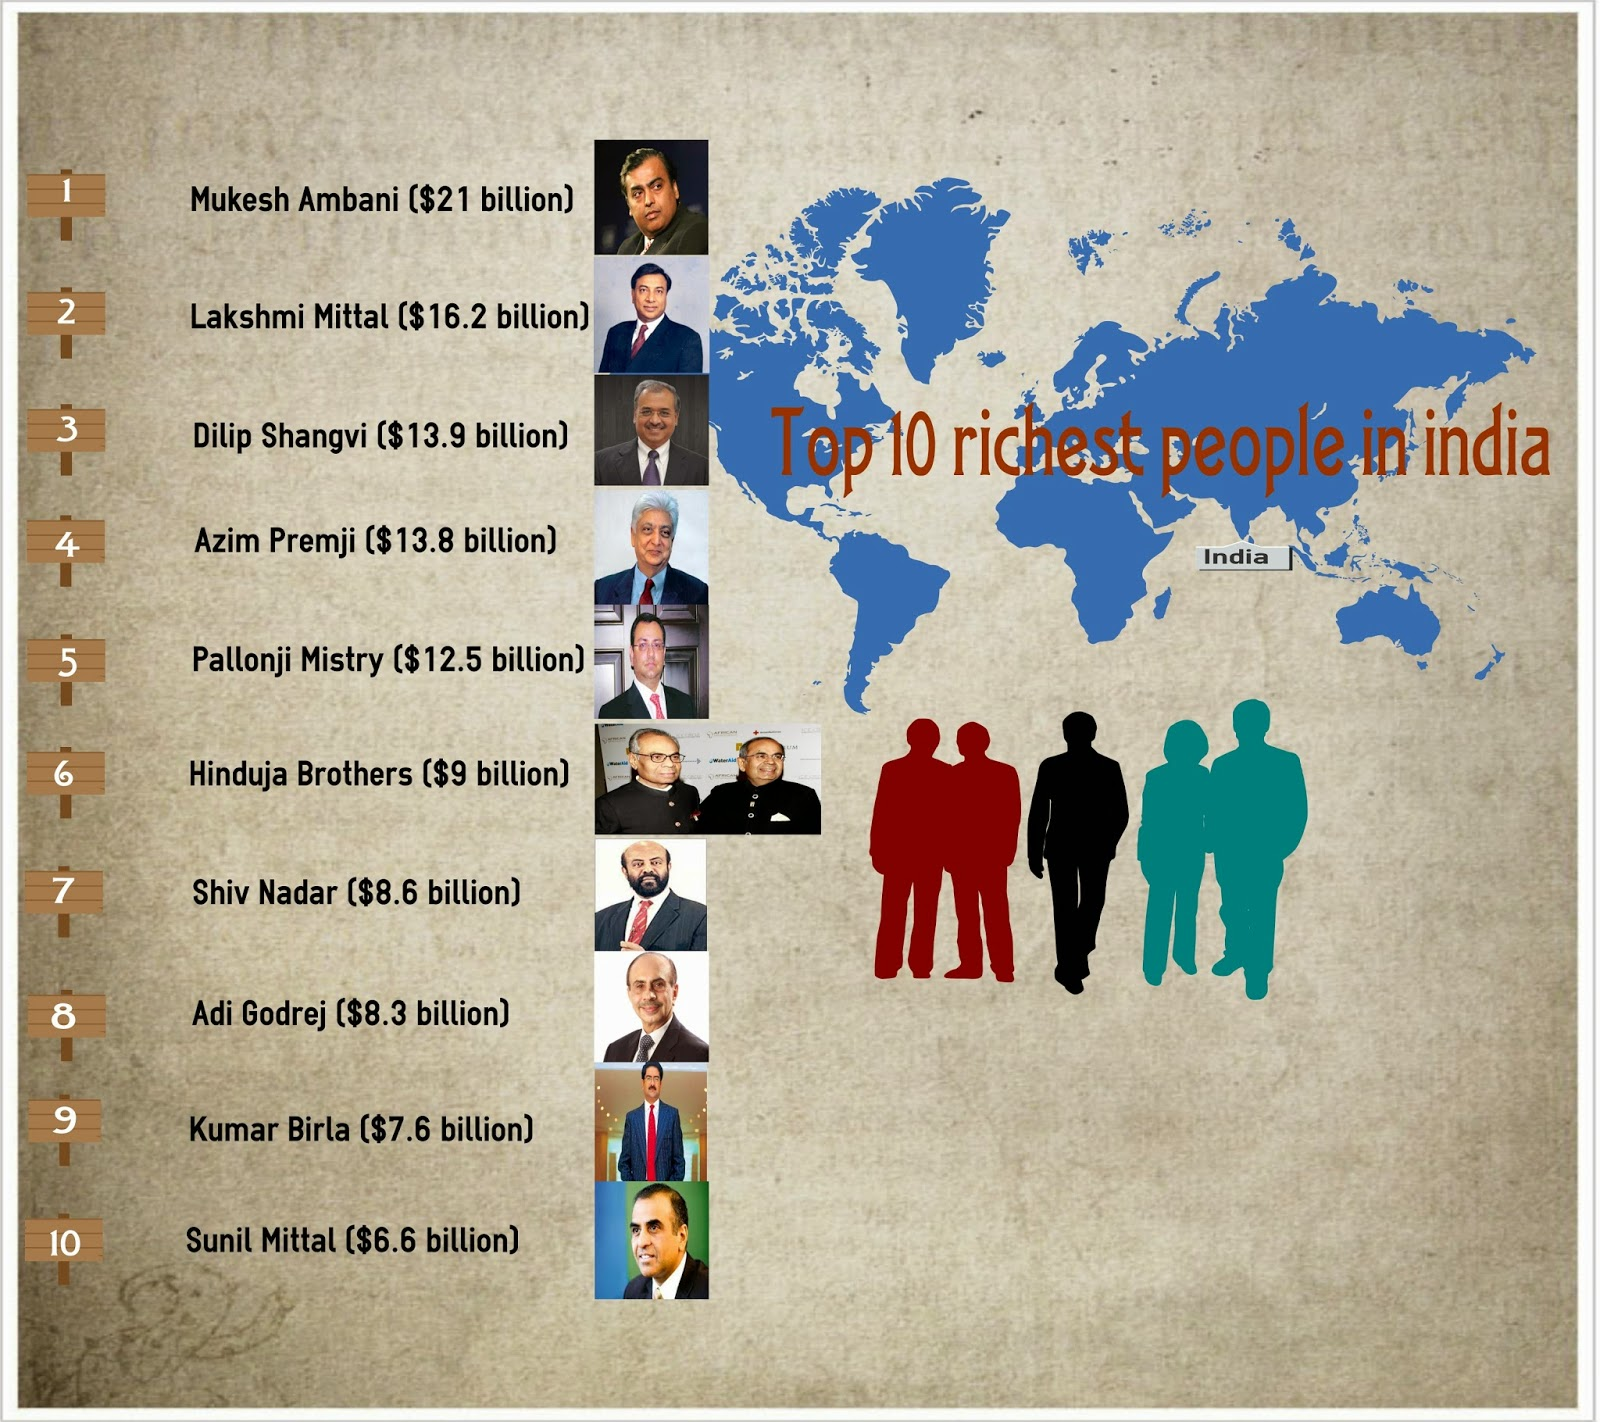 richest-people-in-india